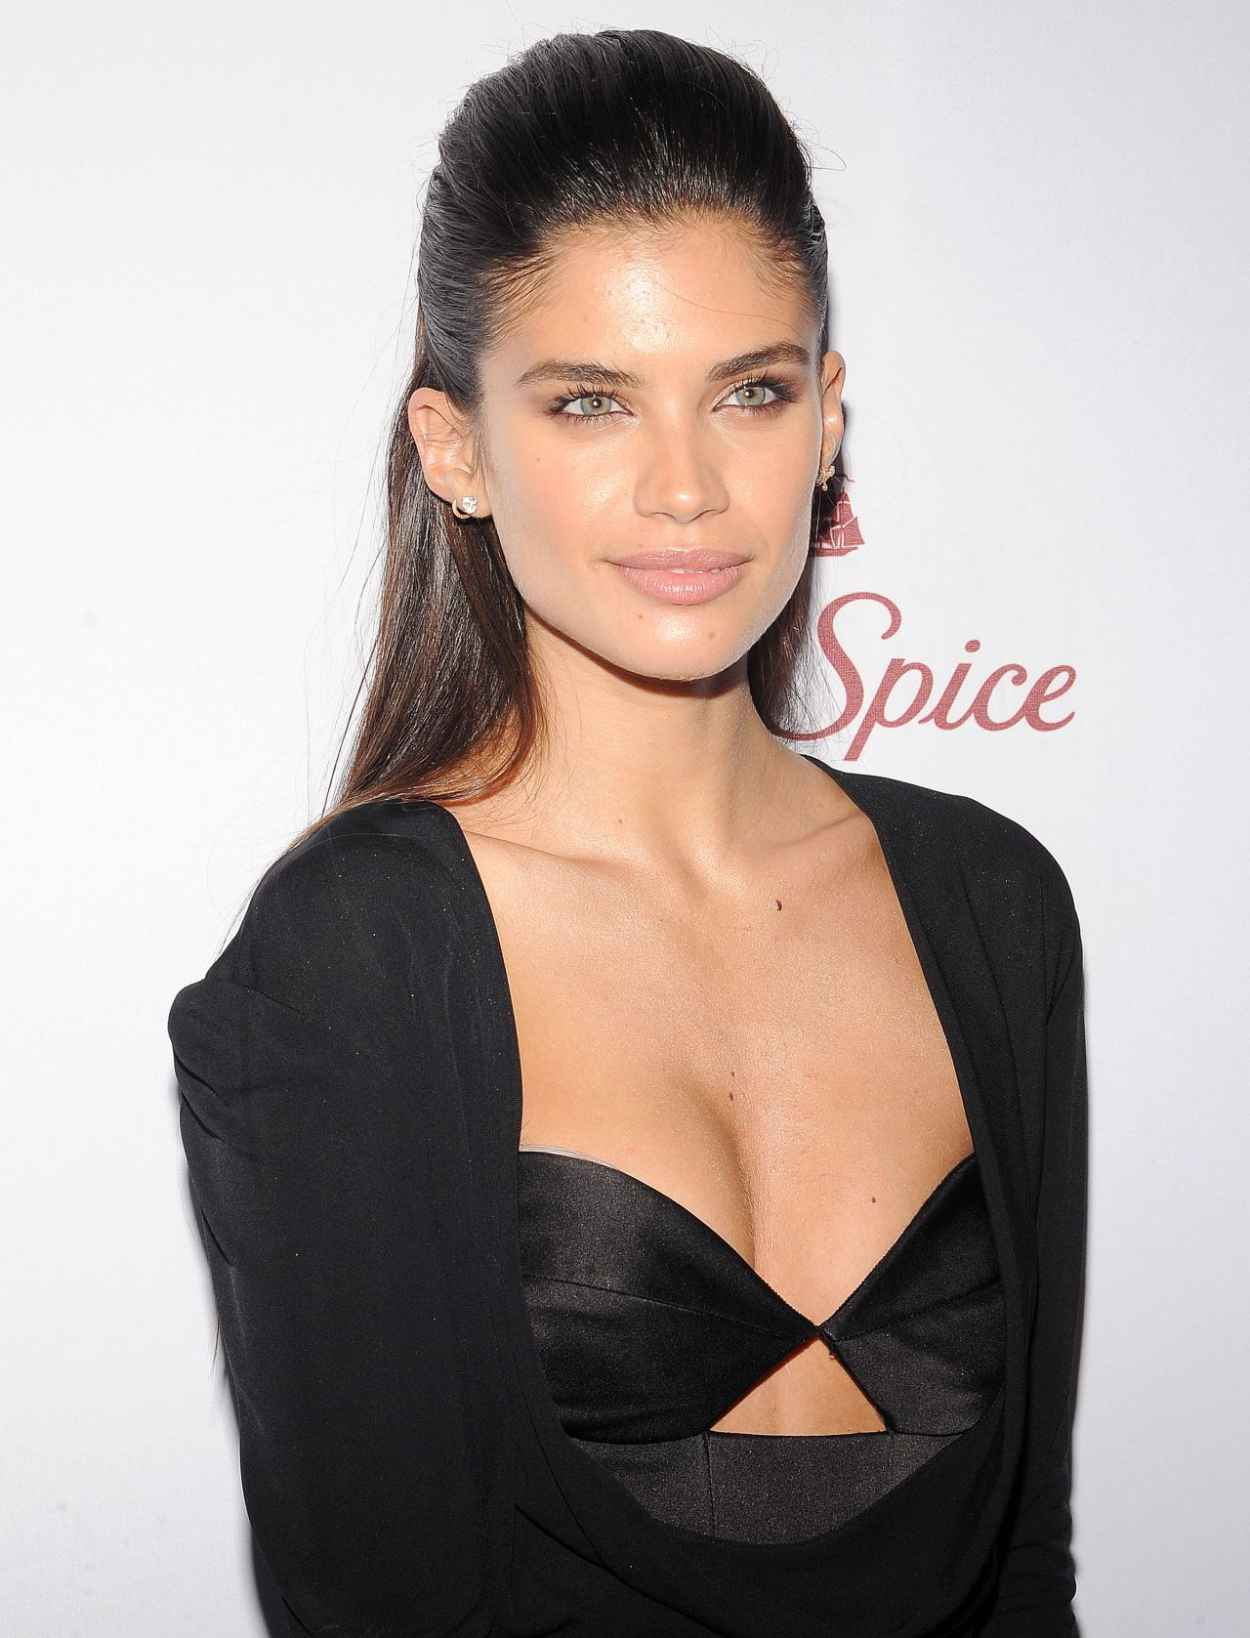 Sara Sampaio - 2015 Sports Illustrated Swimsuit Issue Celebration in New York City-1